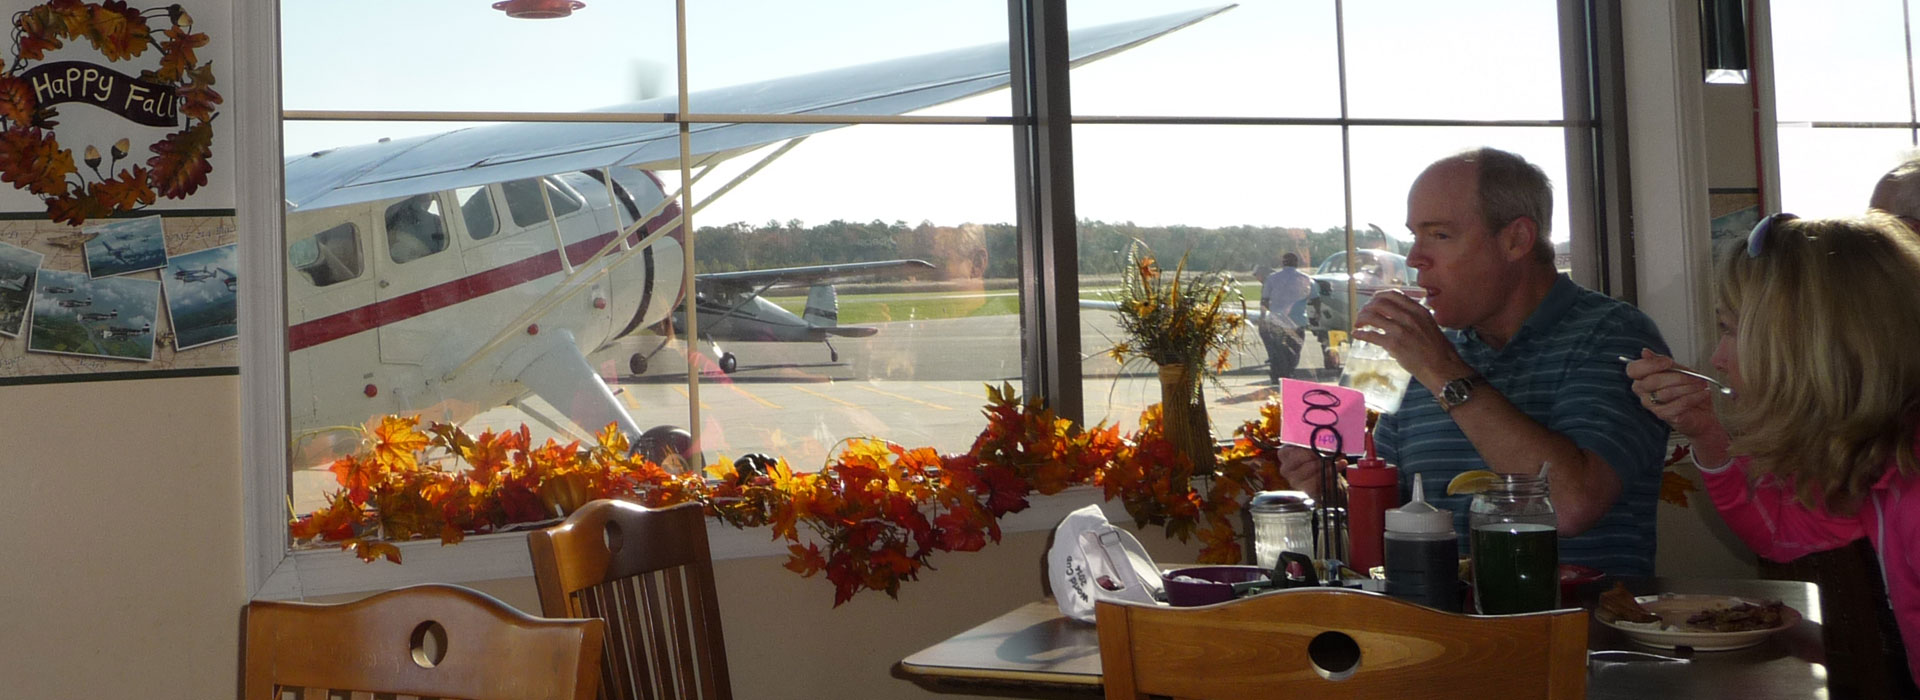 couple enjoying lunch at Kays at The Airport restaurant